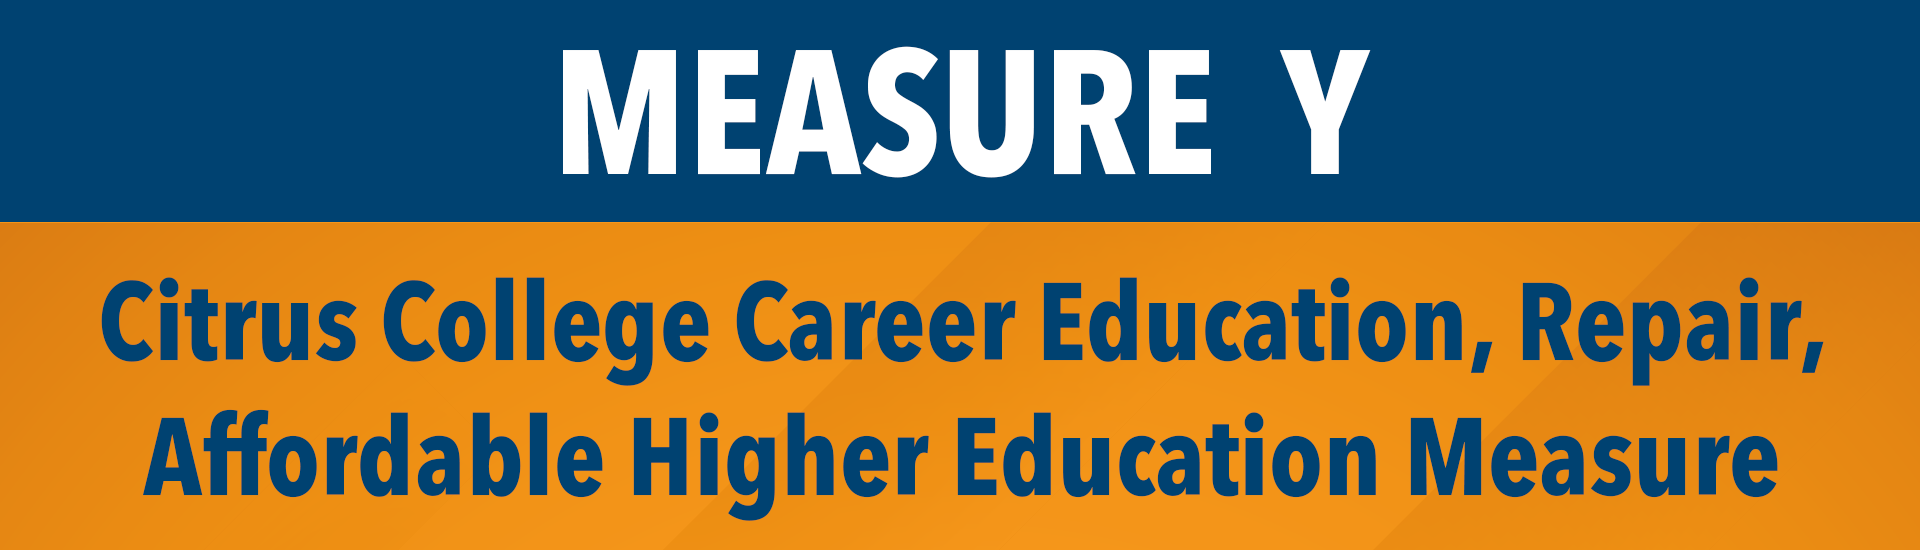 MEASURE Y Citrus College Career Education, Repair, Affordable Higher Education Measure